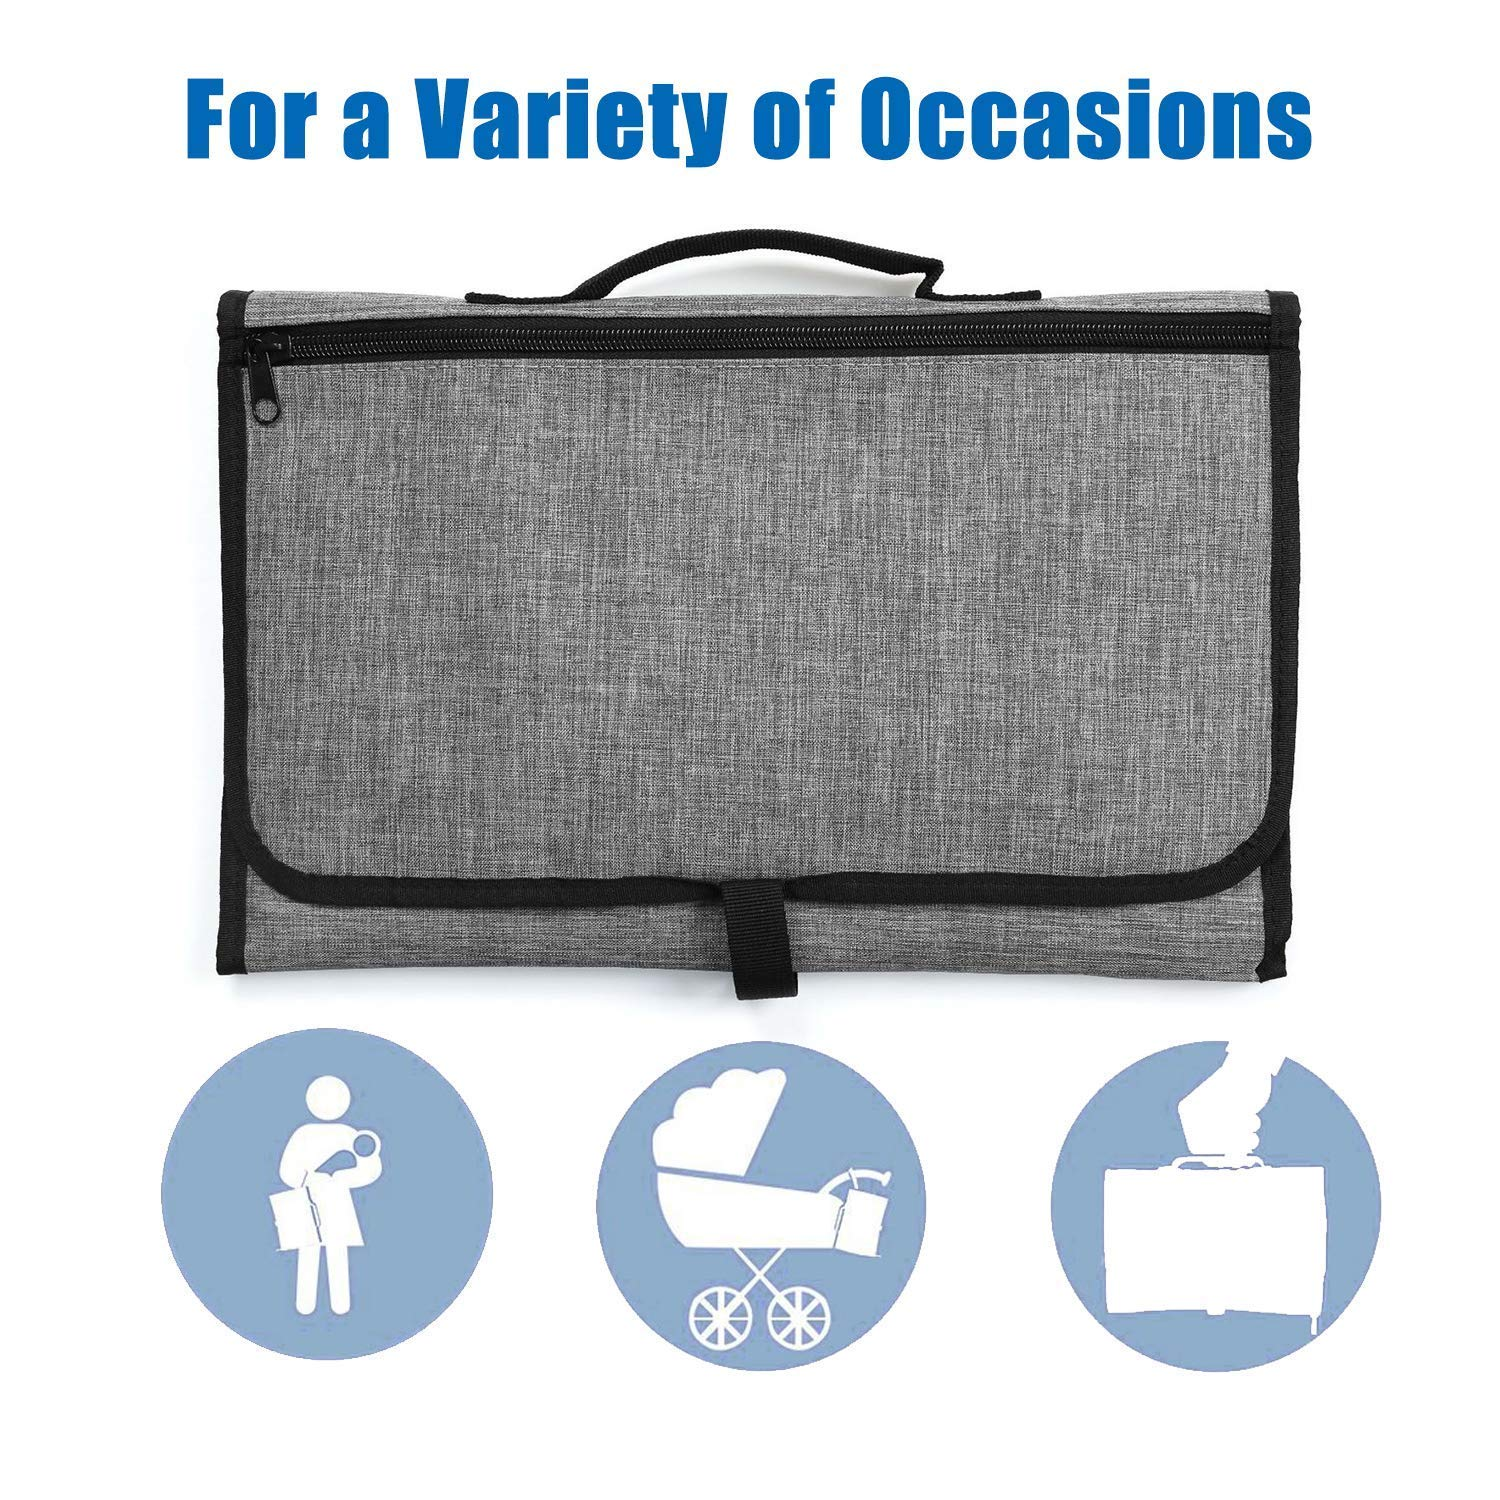 Baby Large Portable Diaper Changing Pad, Foldable Waterproof Mat Travel Changing Pad for Toddlers and Newborns(Grey)